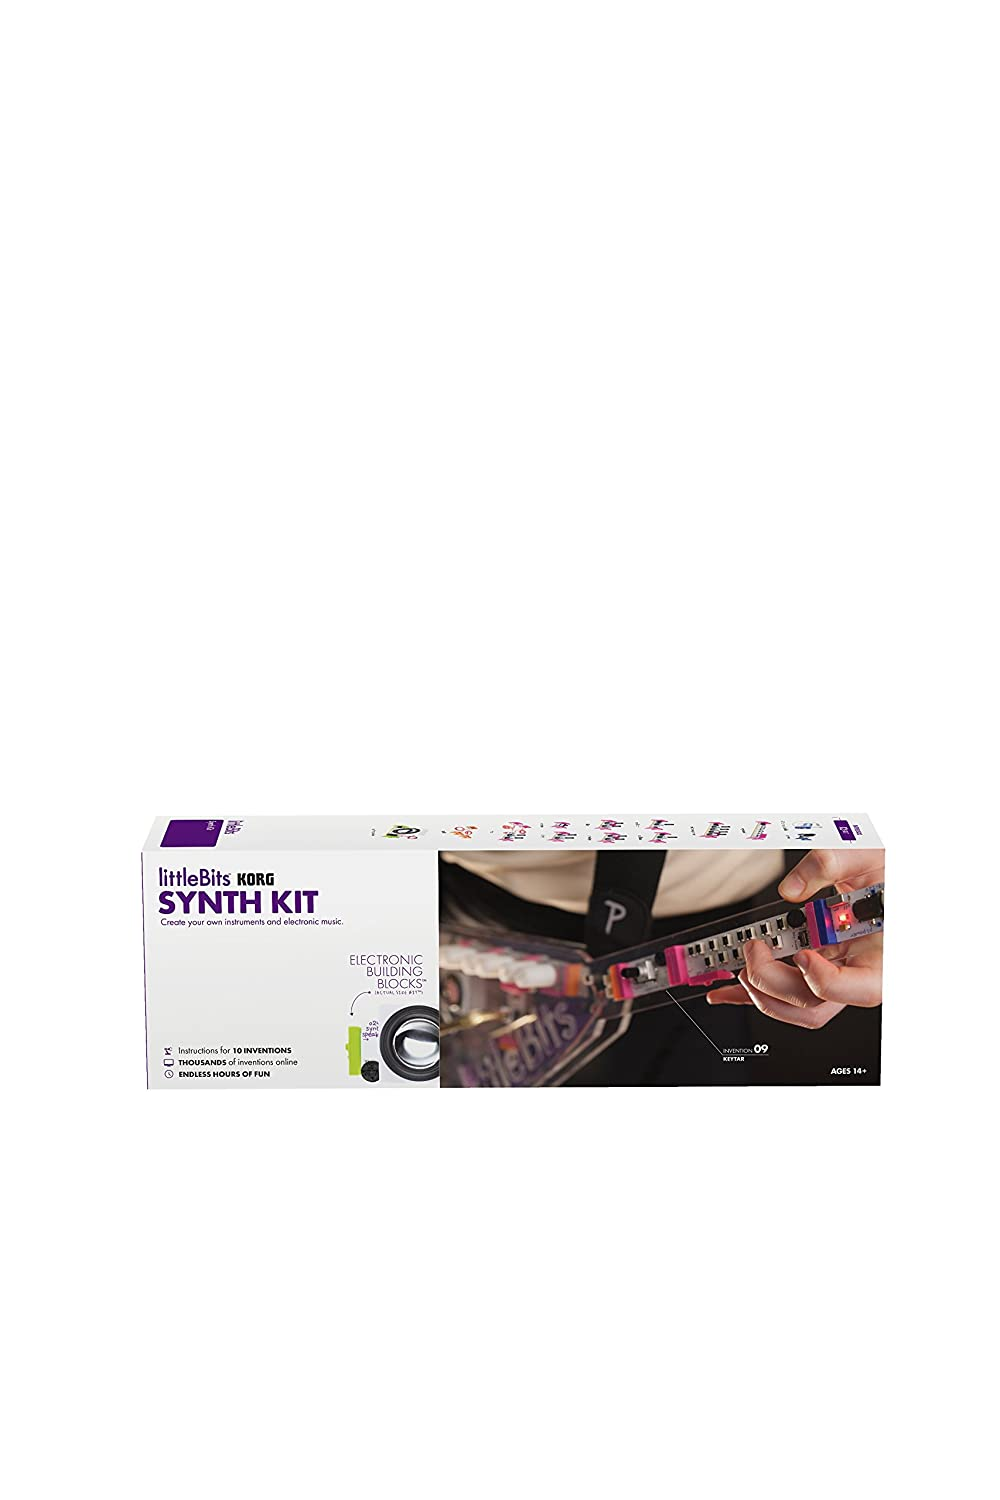 Littlebits Synth Kit Toys Games Electronics Learning Circuits Hall Of